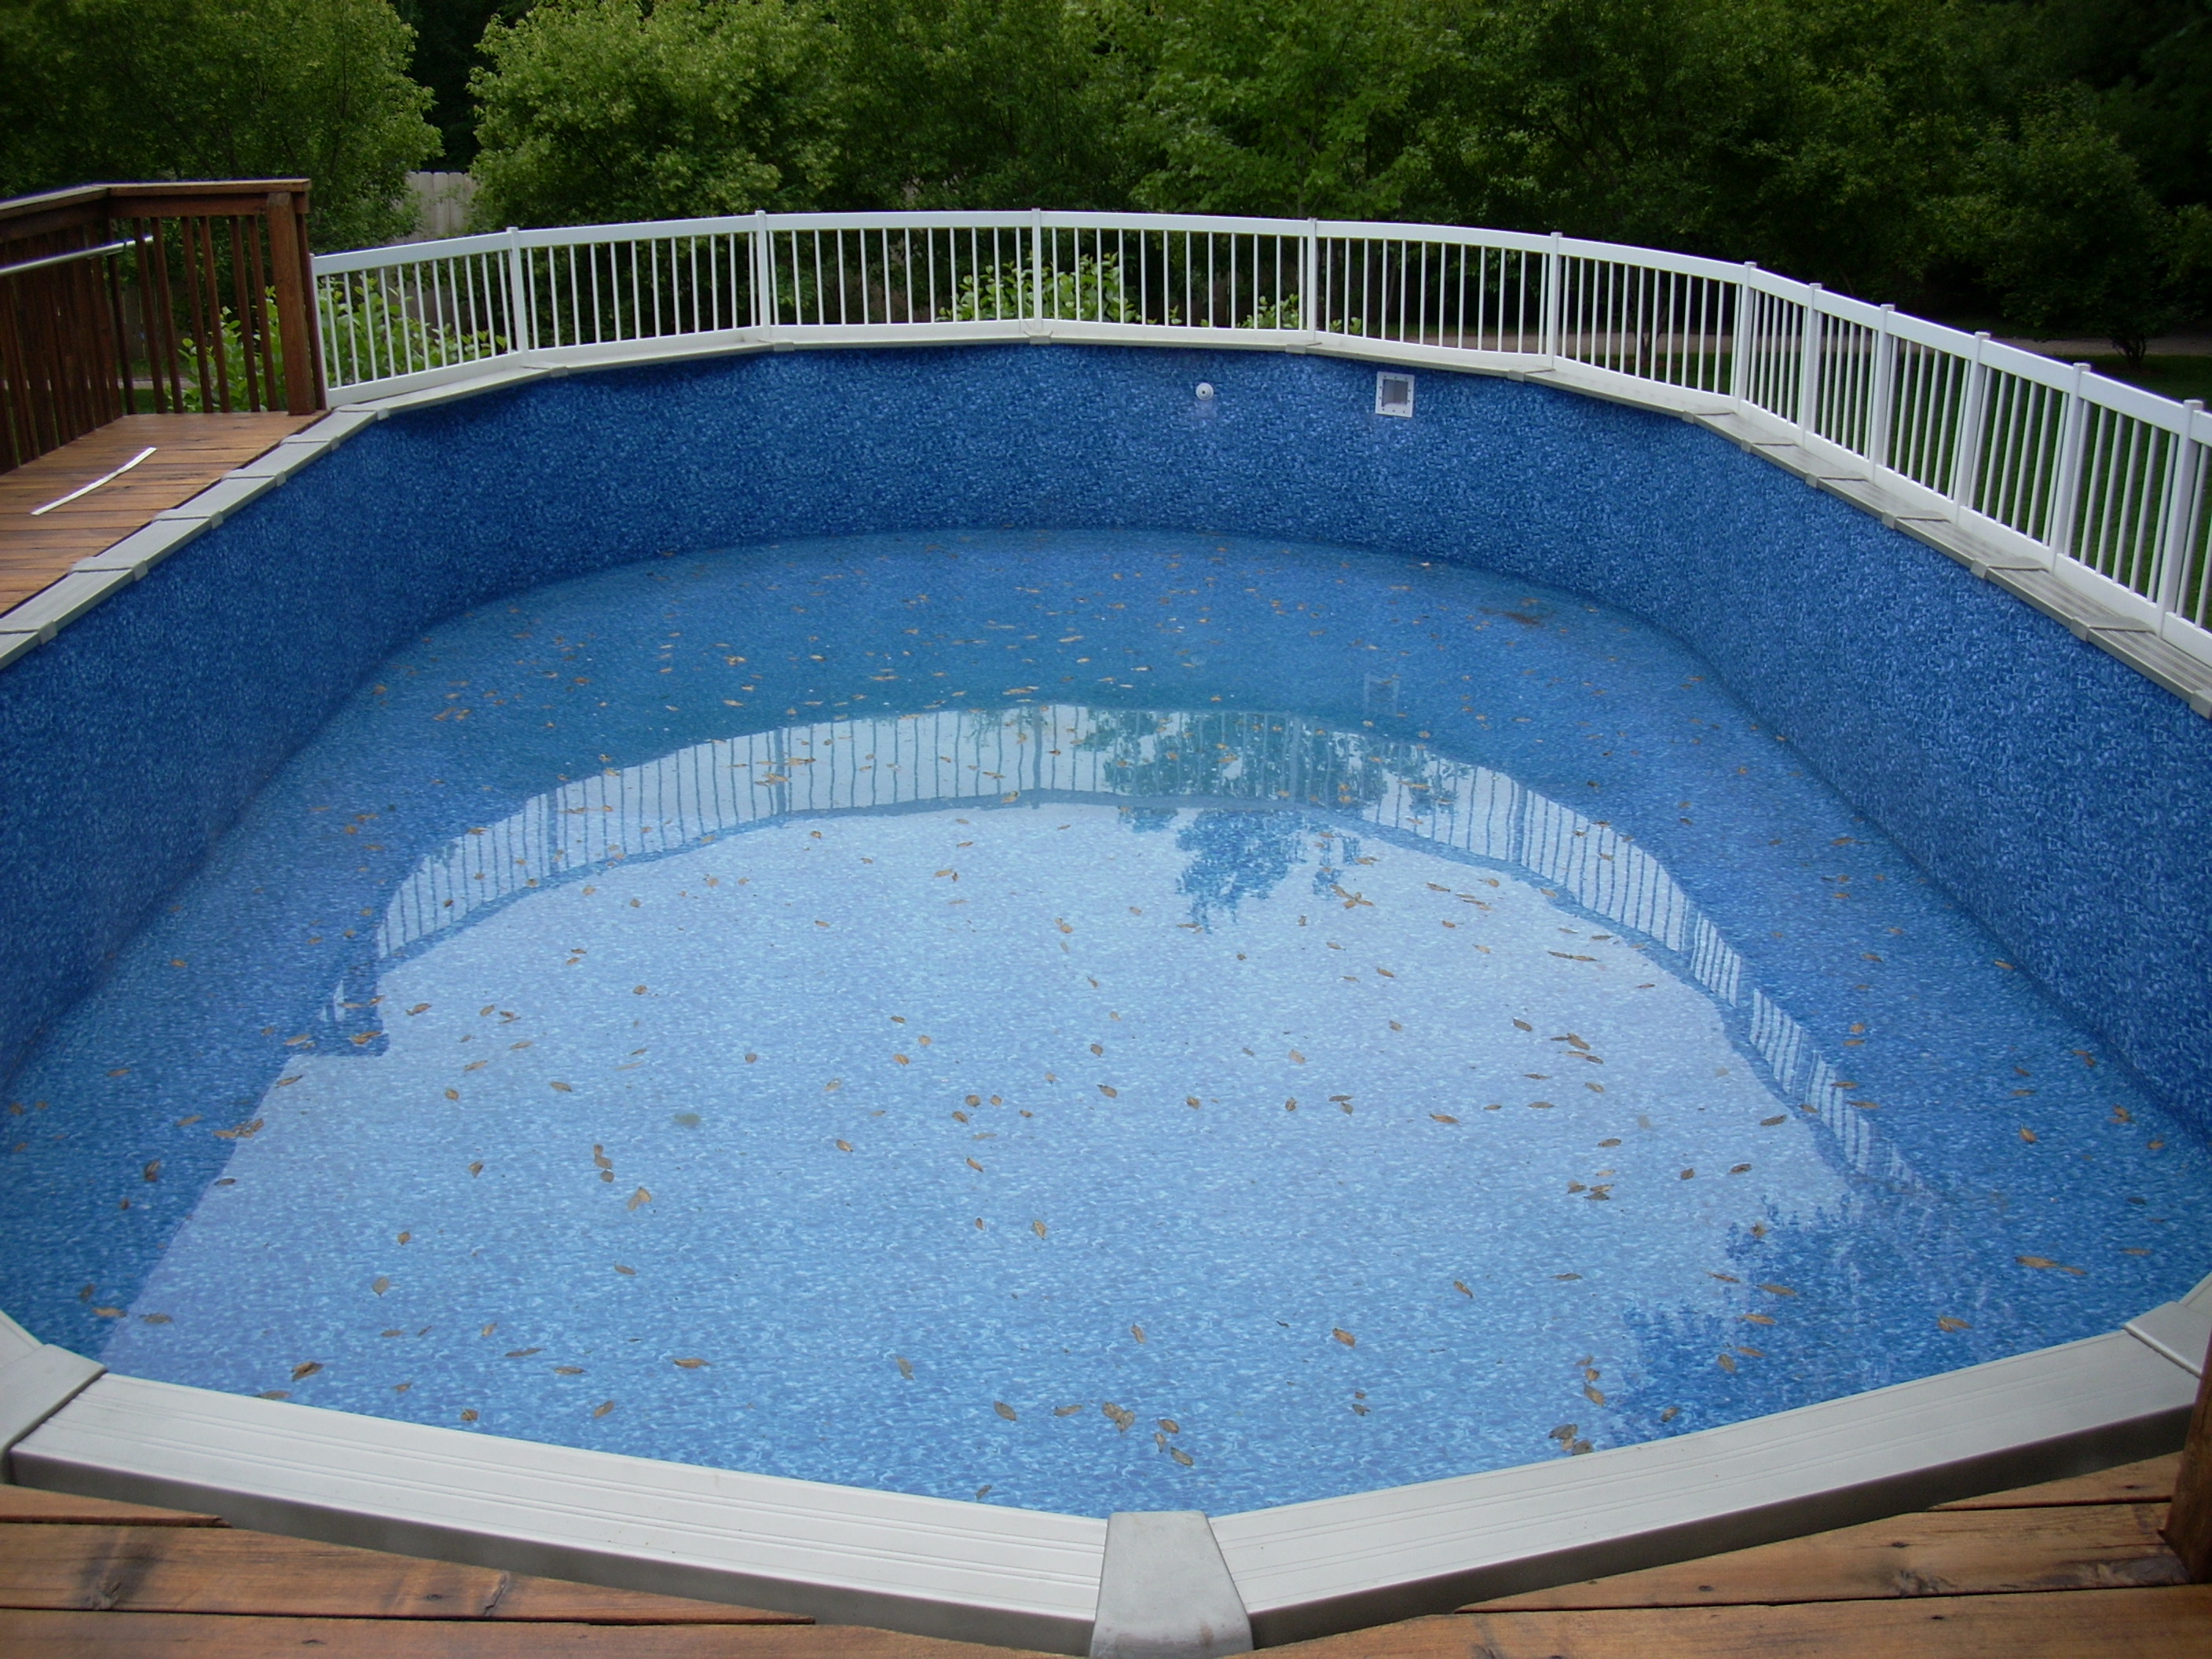 Above ground pool liner replacement bing images for Swimming pool liners